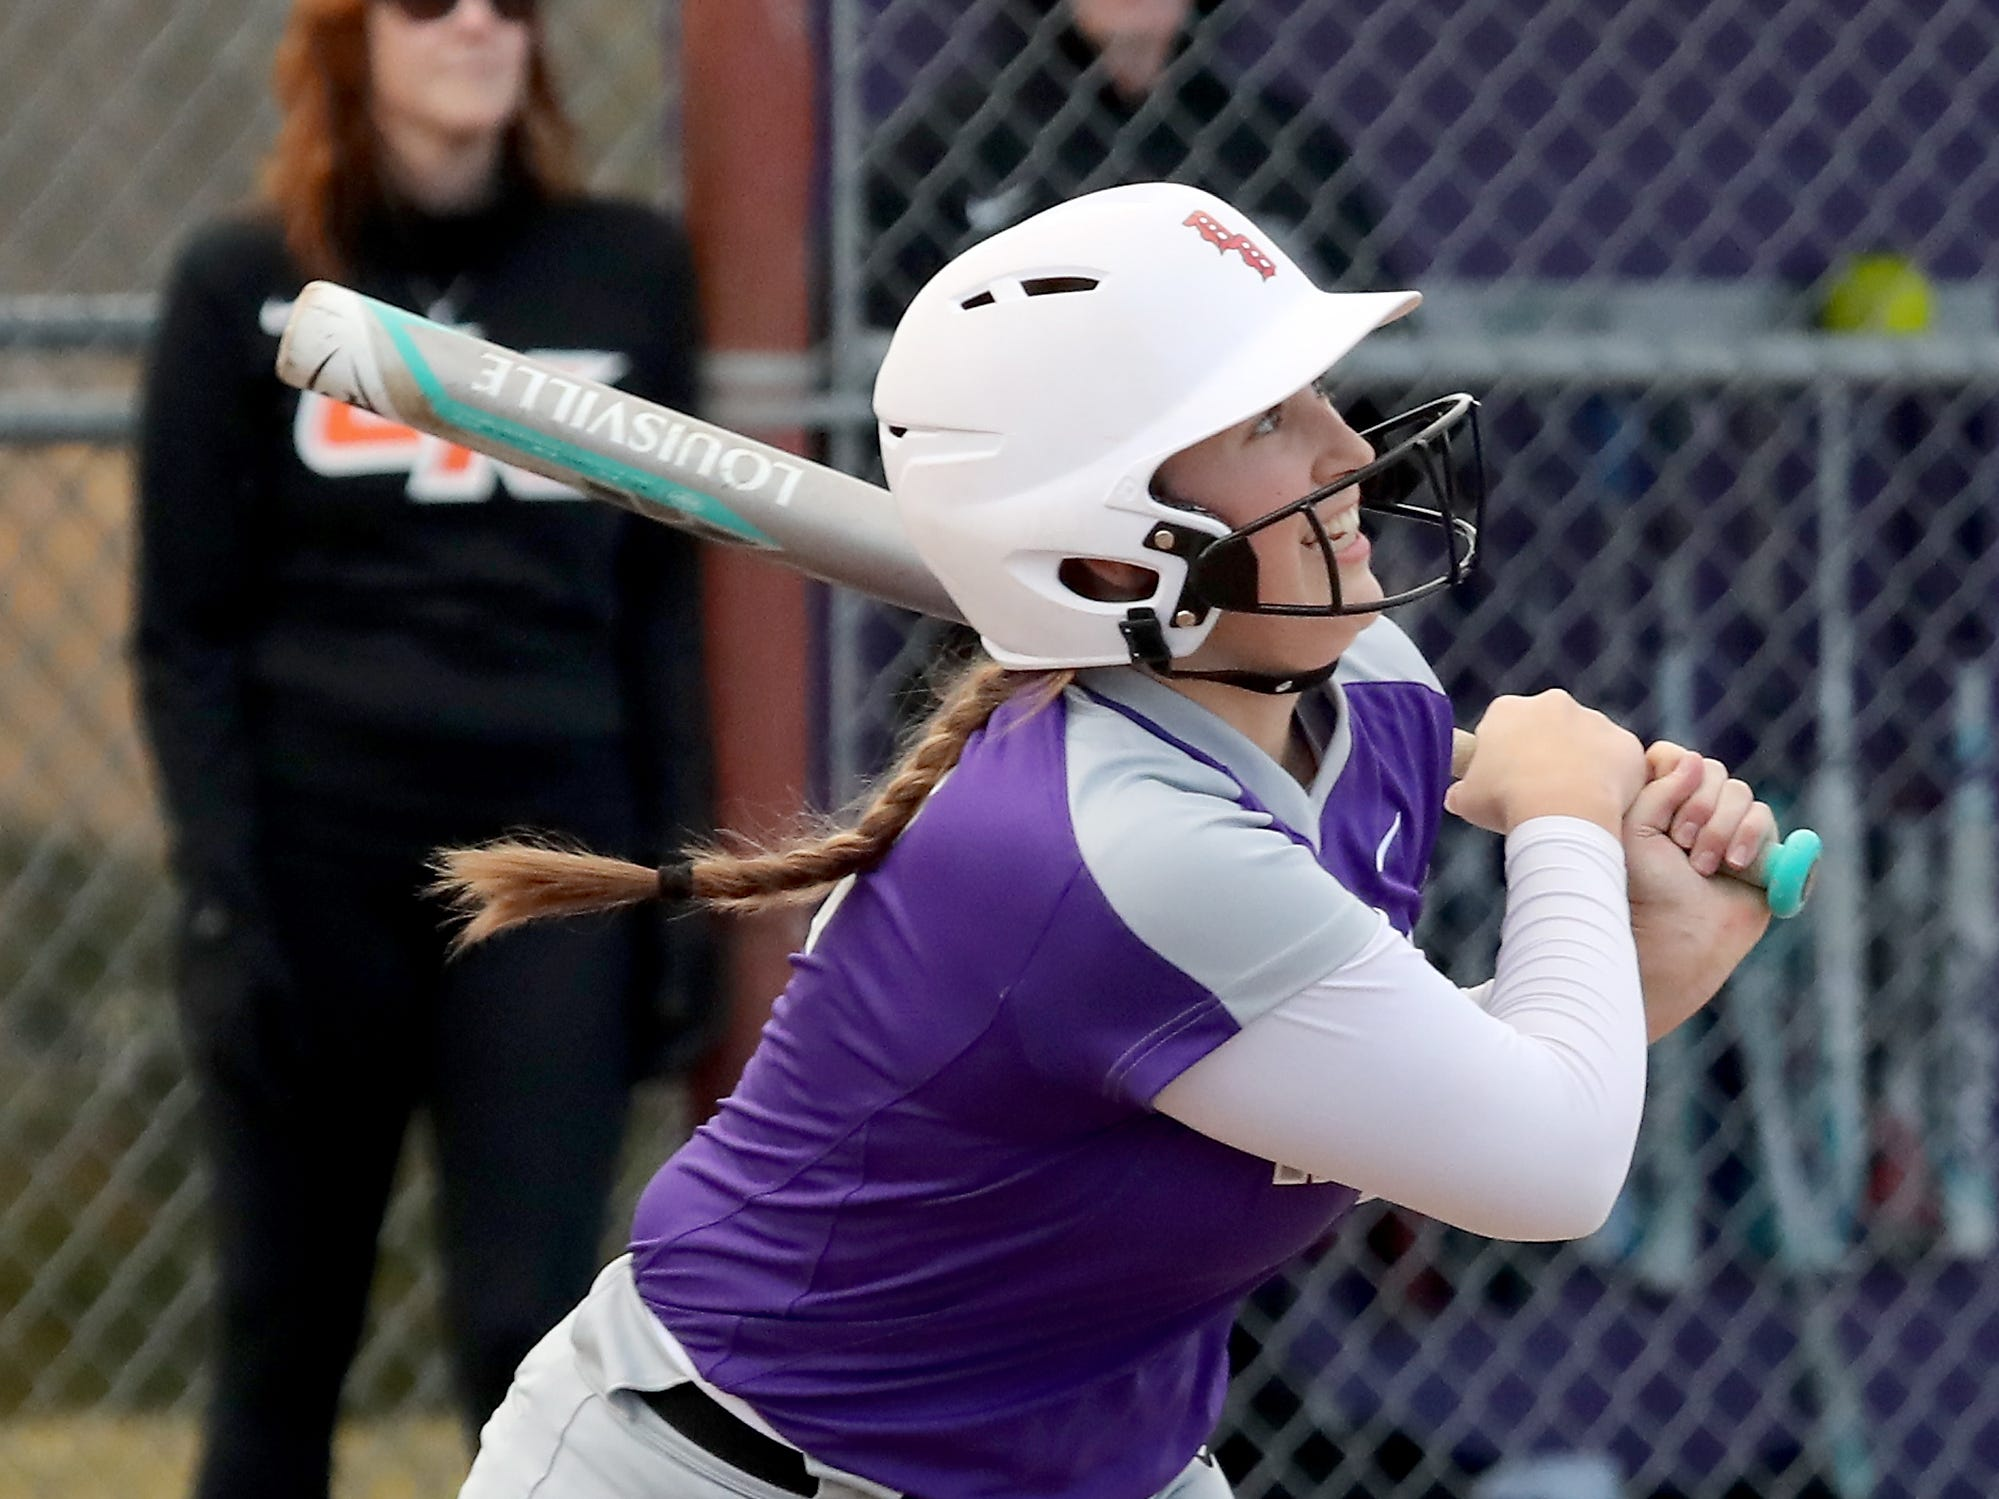 North Kitsap's Lamara Villiard smiles after connecting with a pitch against Central Kitsap Softball in Poulsbo on Wednesday, March 13, 2019.